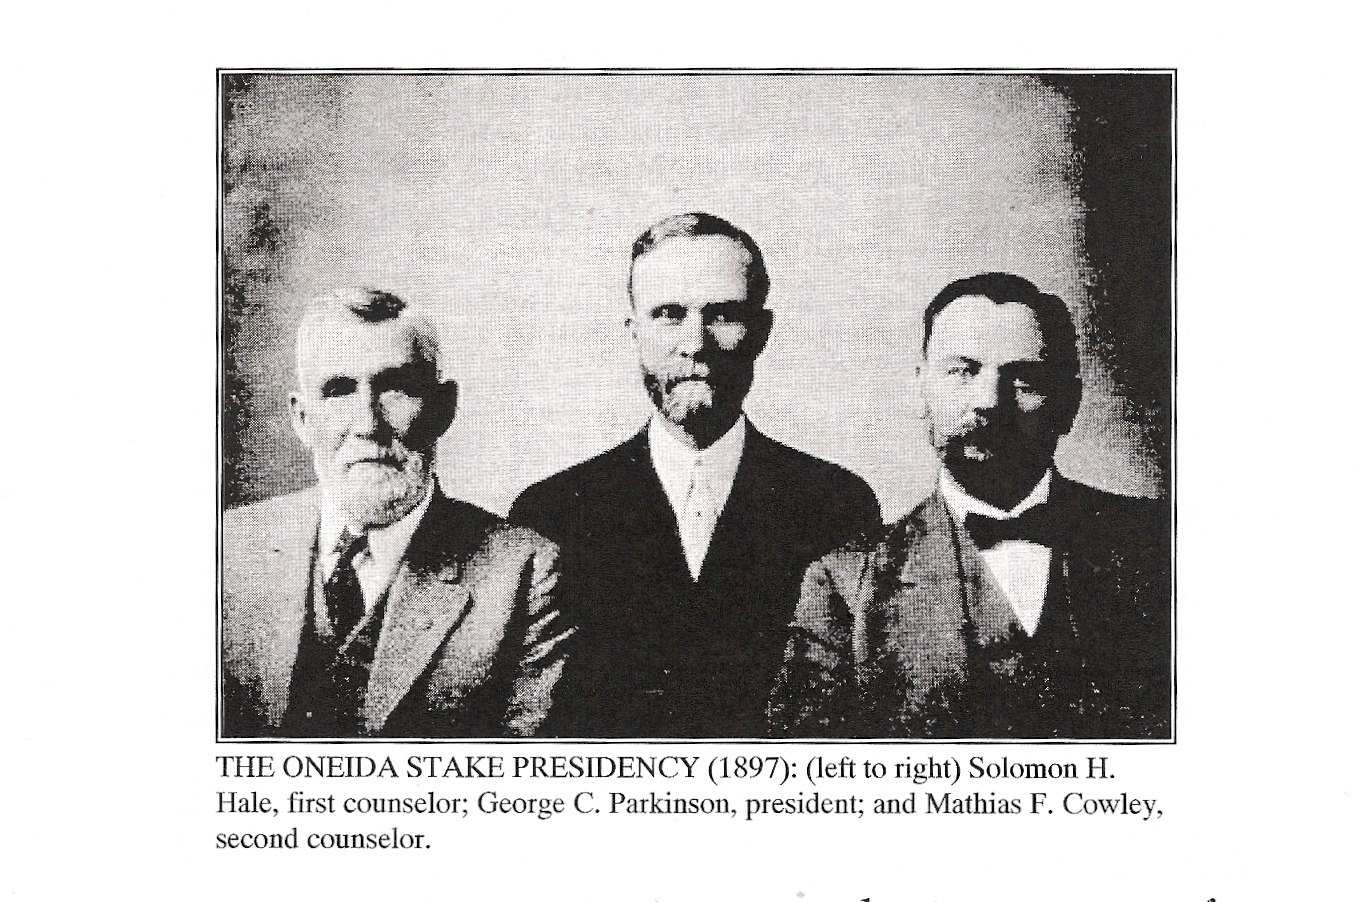 The Stake Presidency of the Oneida Stake. These men were instrumental in getting the Academy funded and constructed. Pres. George Parkinson (C), 1st Couns. Solomon Hale (L) and 2nd Couns. Mathias Cowley (R). 1897